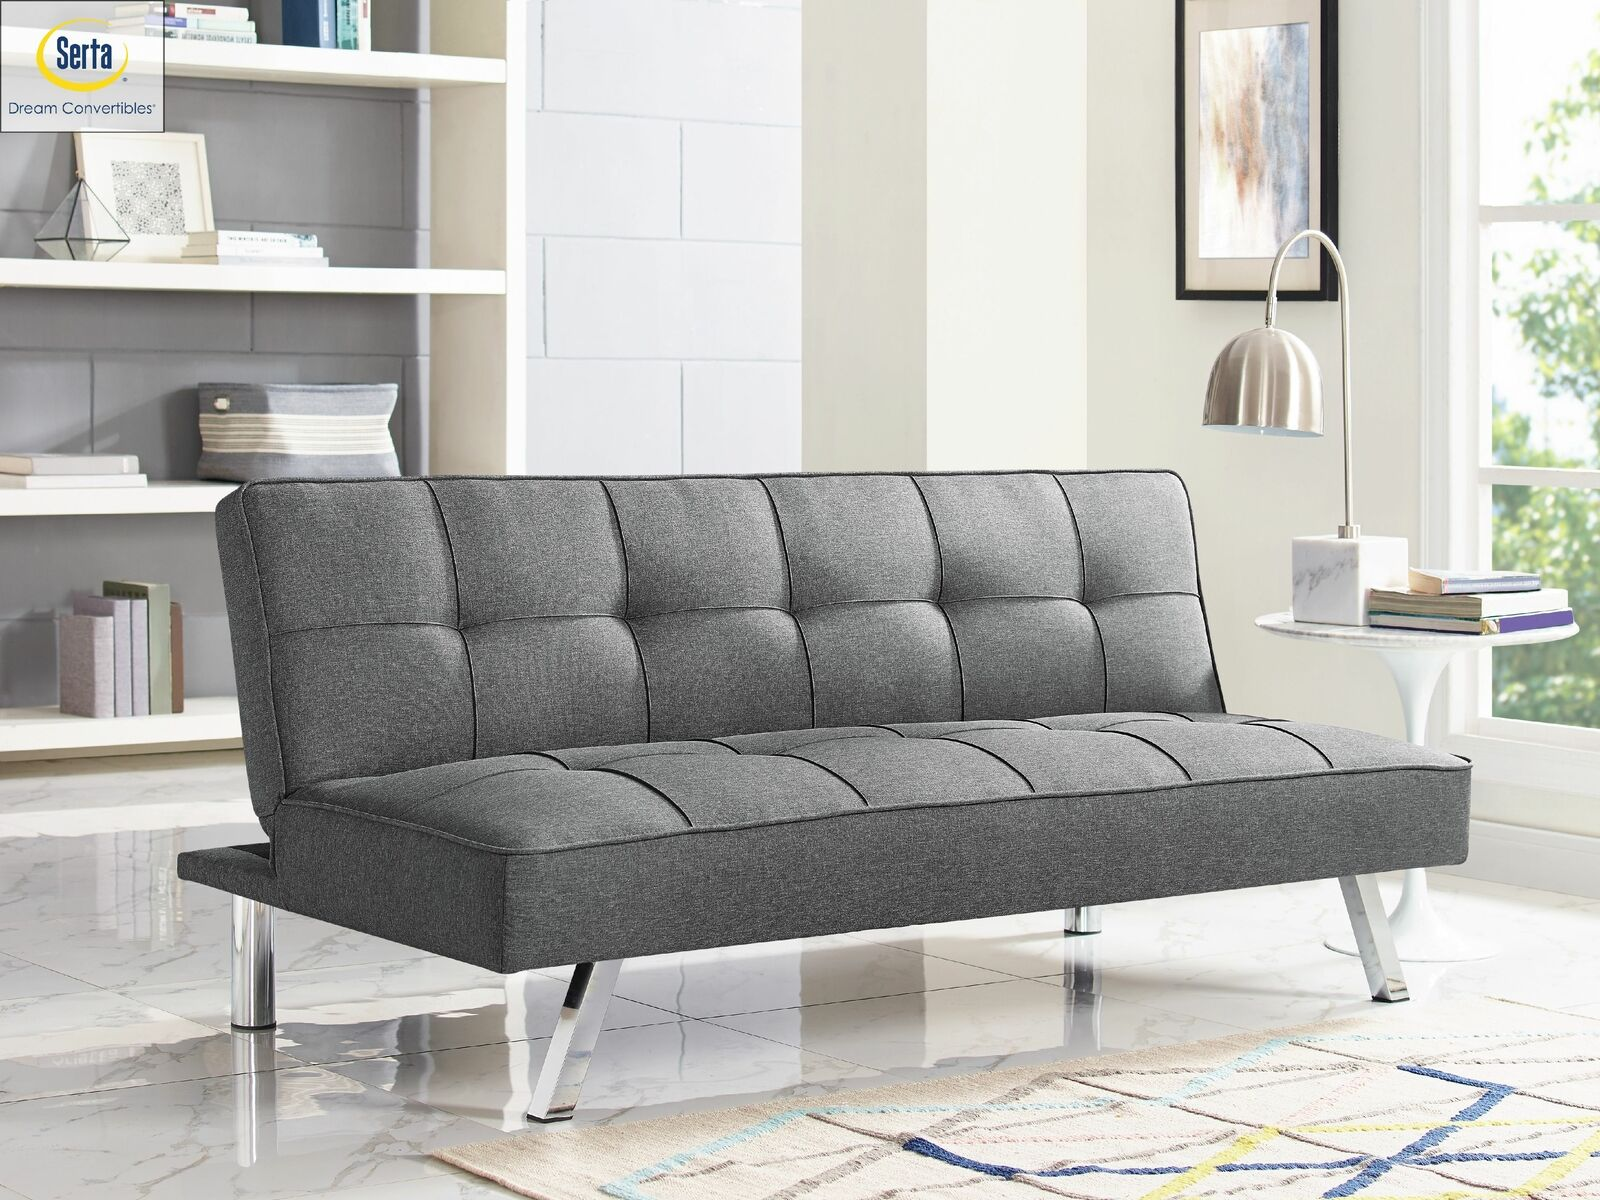 Modern Sofa Bed Serta Futon Couch Convertible Sleeper Microfiber Seat Charcoal 0812189011261 For Sale Online